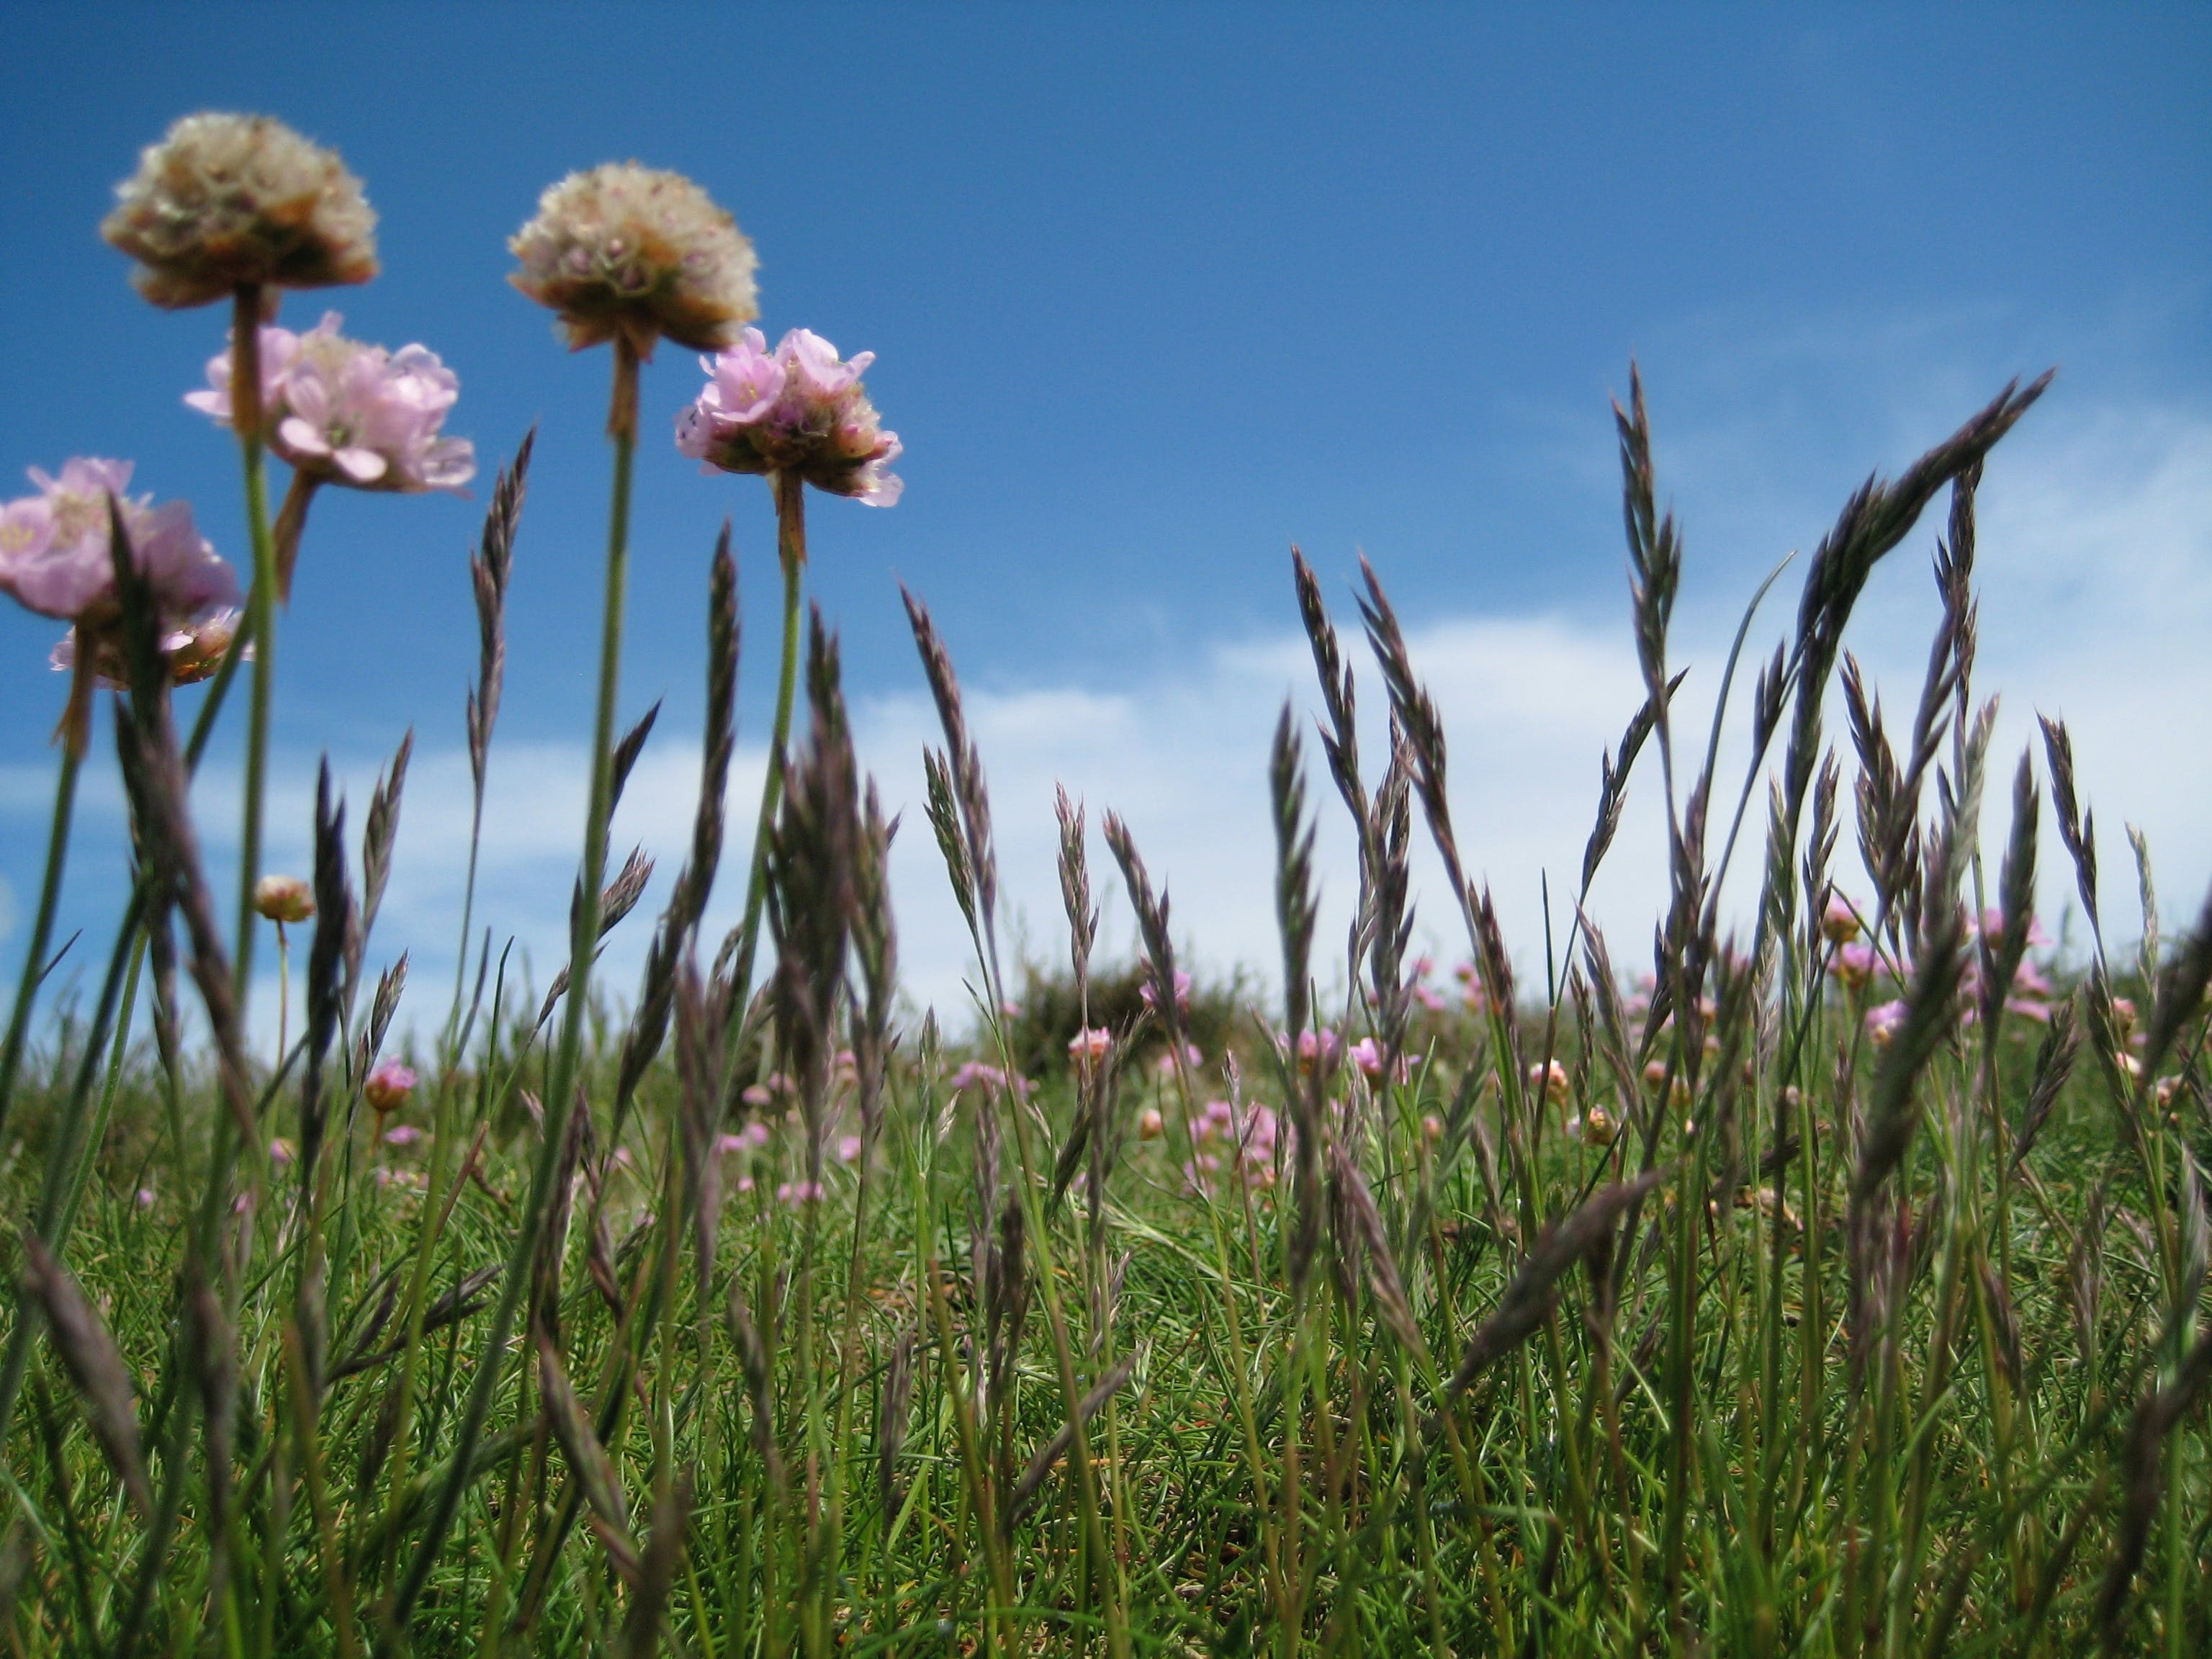 Pink Flower on Green Field Under White and Blue Sky during Daytime